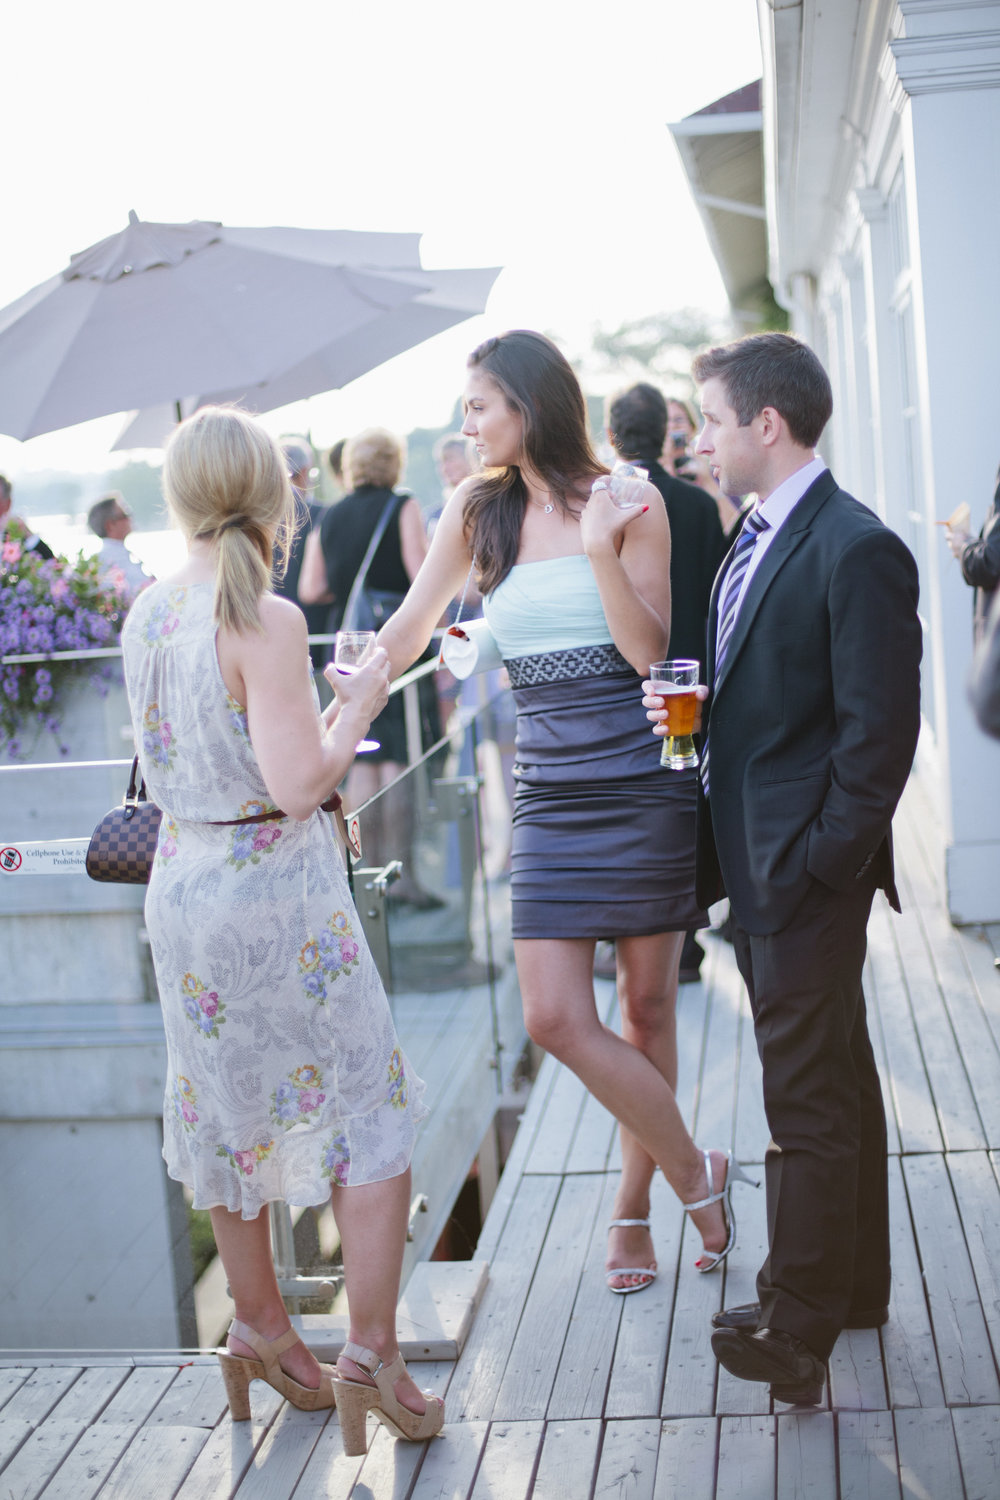 Image of a wedding day cocktail hour.  Guests are talking over cocktails and refreshments.